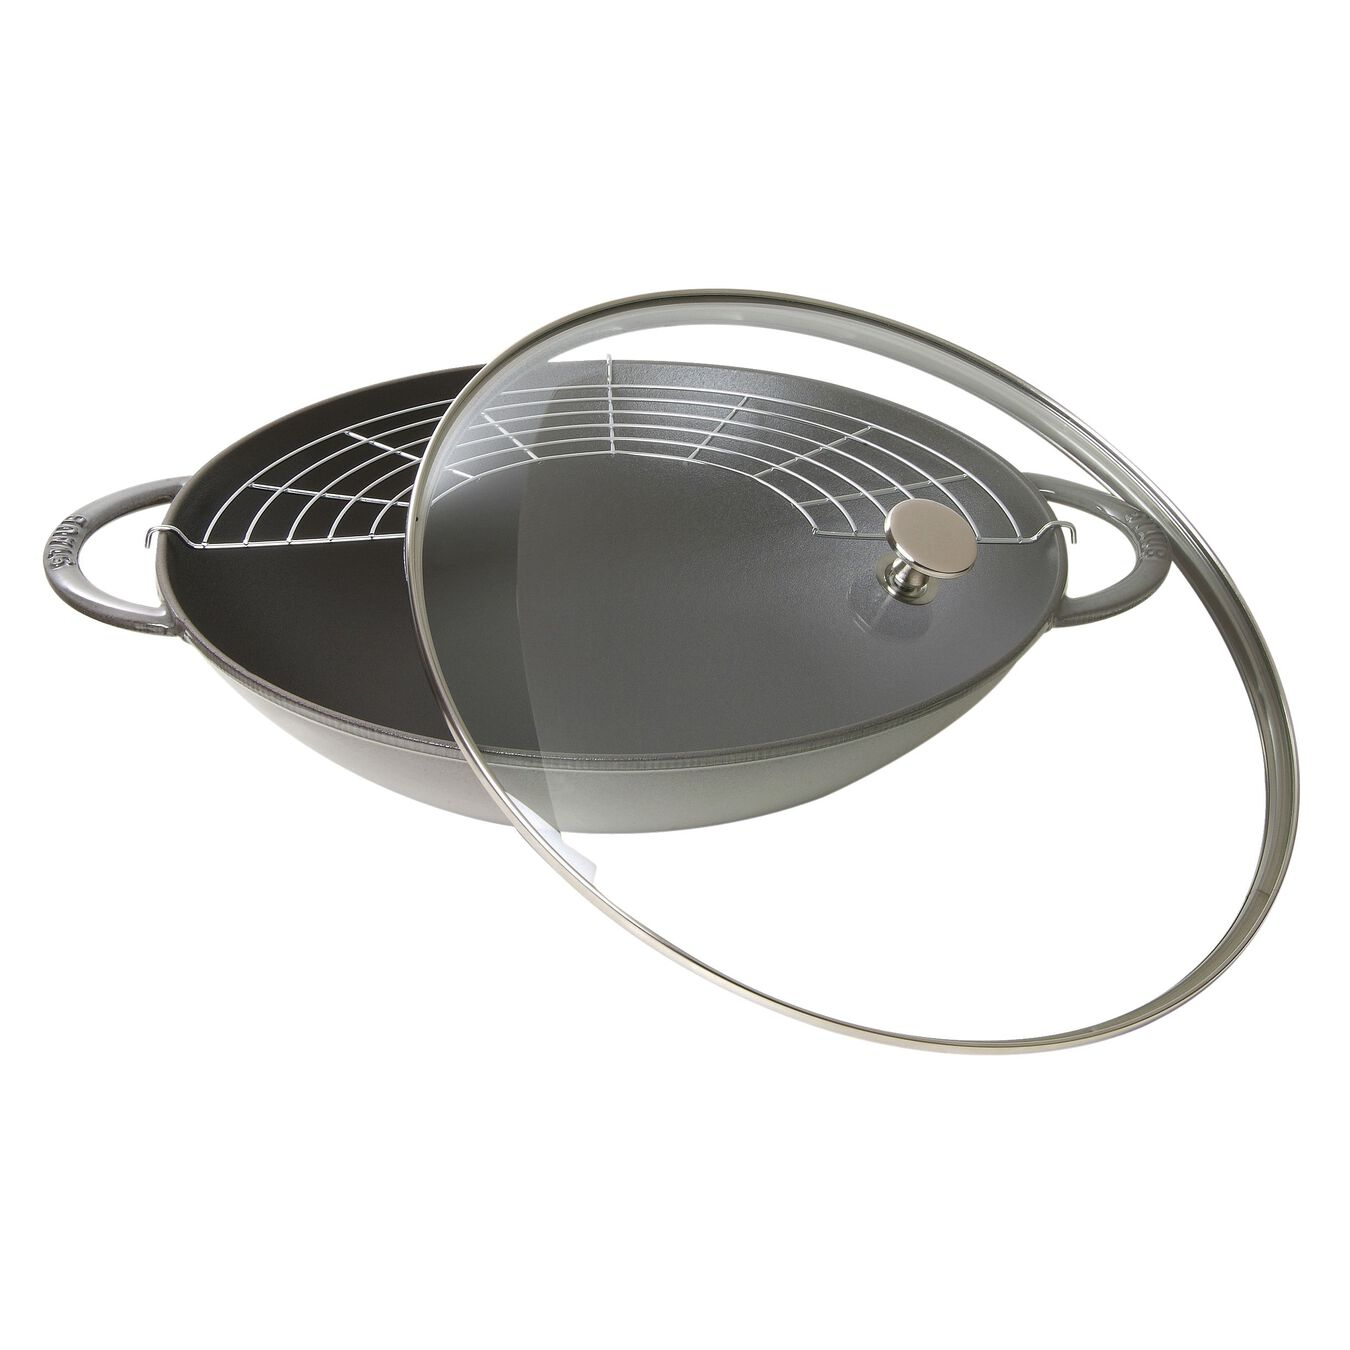 37 cm Cast iron Wok with glass lid, Graphite-Grey,,large 1